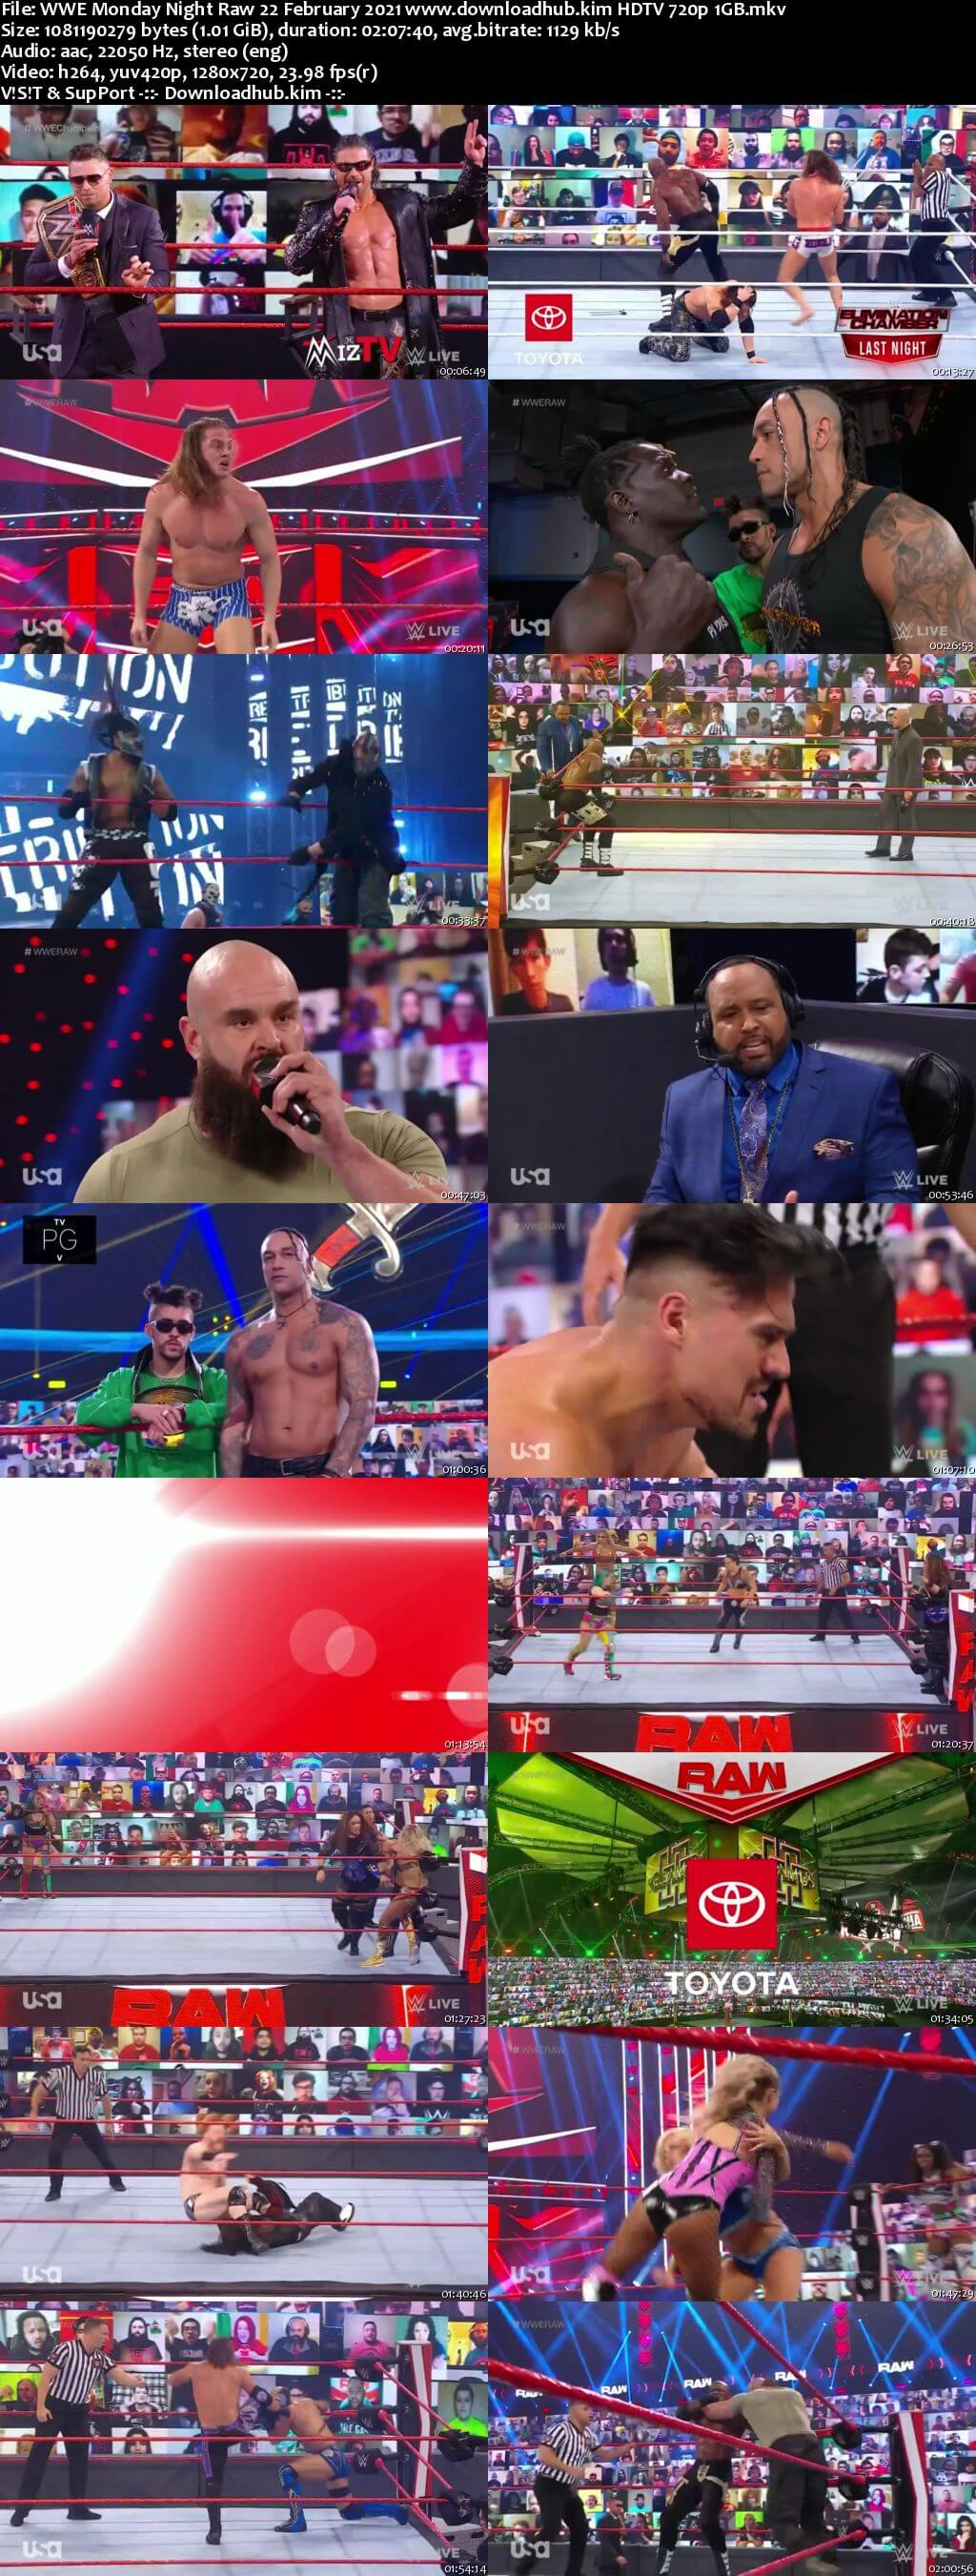 WWE Monday Night Raw 22nd February 2021 720p 500MB HDTVRip 480p